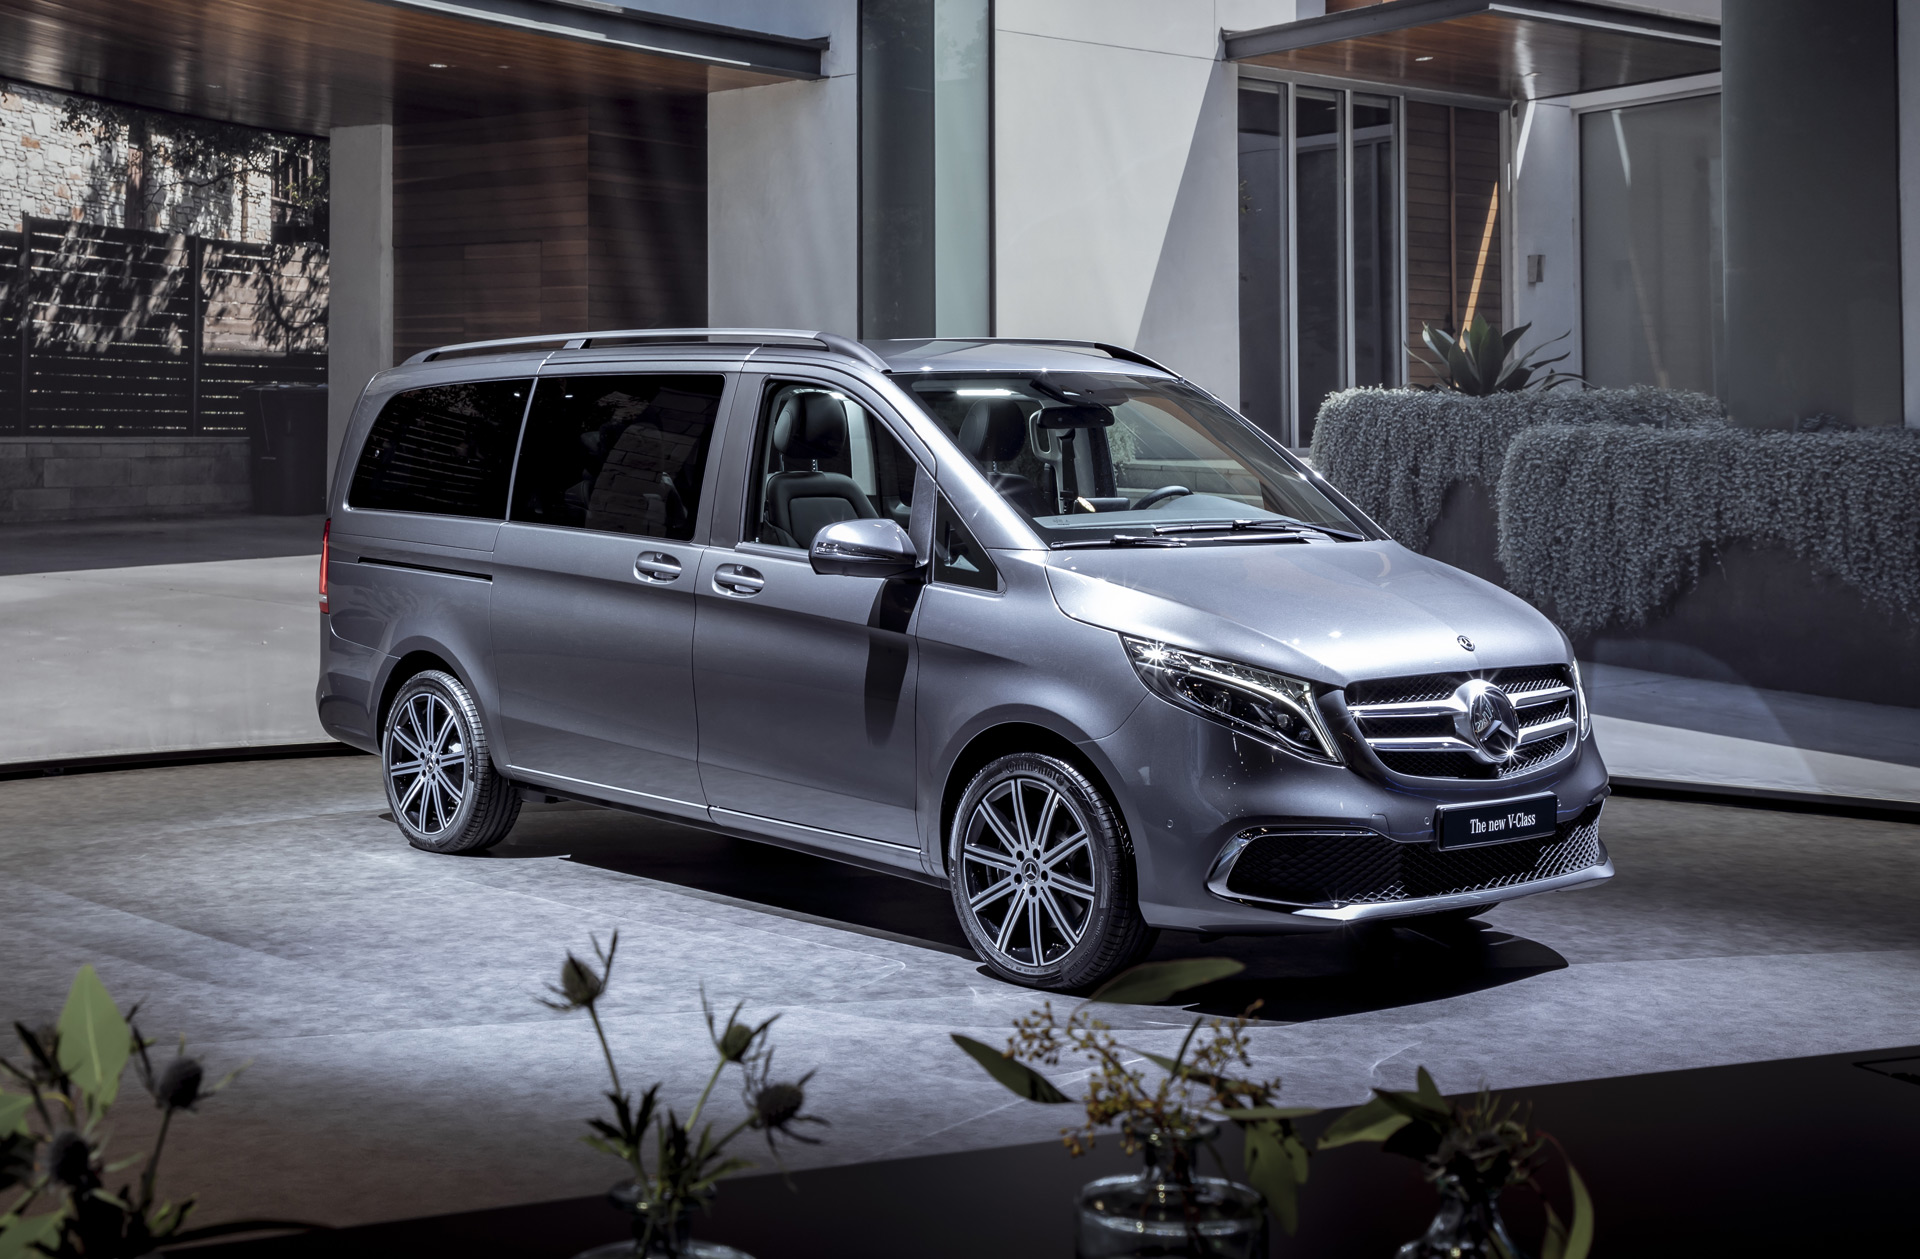 2019 Mercedes-Benz V-Class hints at updates for Metris van, EQV electric version coming